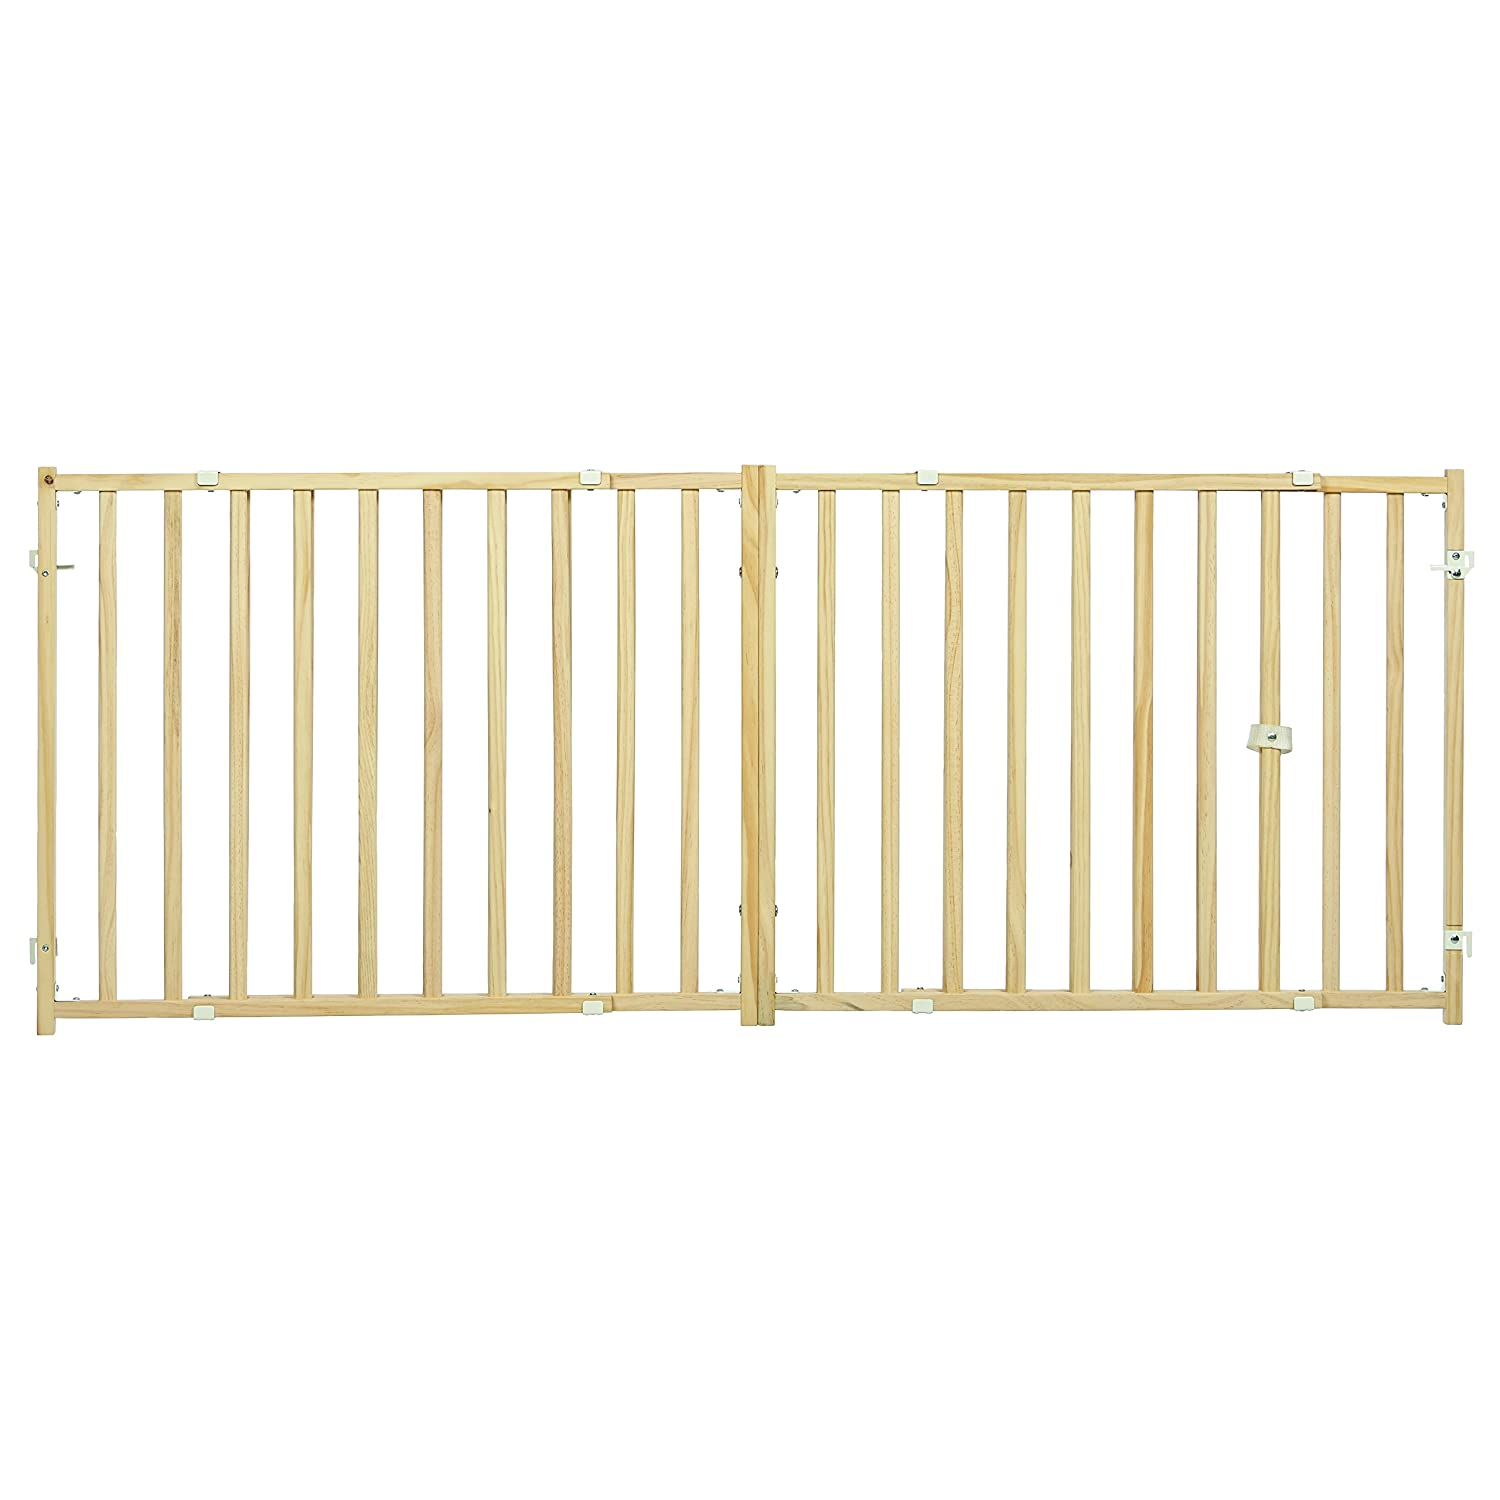 Midwest Homes for Pets Extra-Wide Swing Pet Safety Gate, Expands 50.25-94, 24 Tall Expands 50.25-94 24 Tall 2924WEW-2